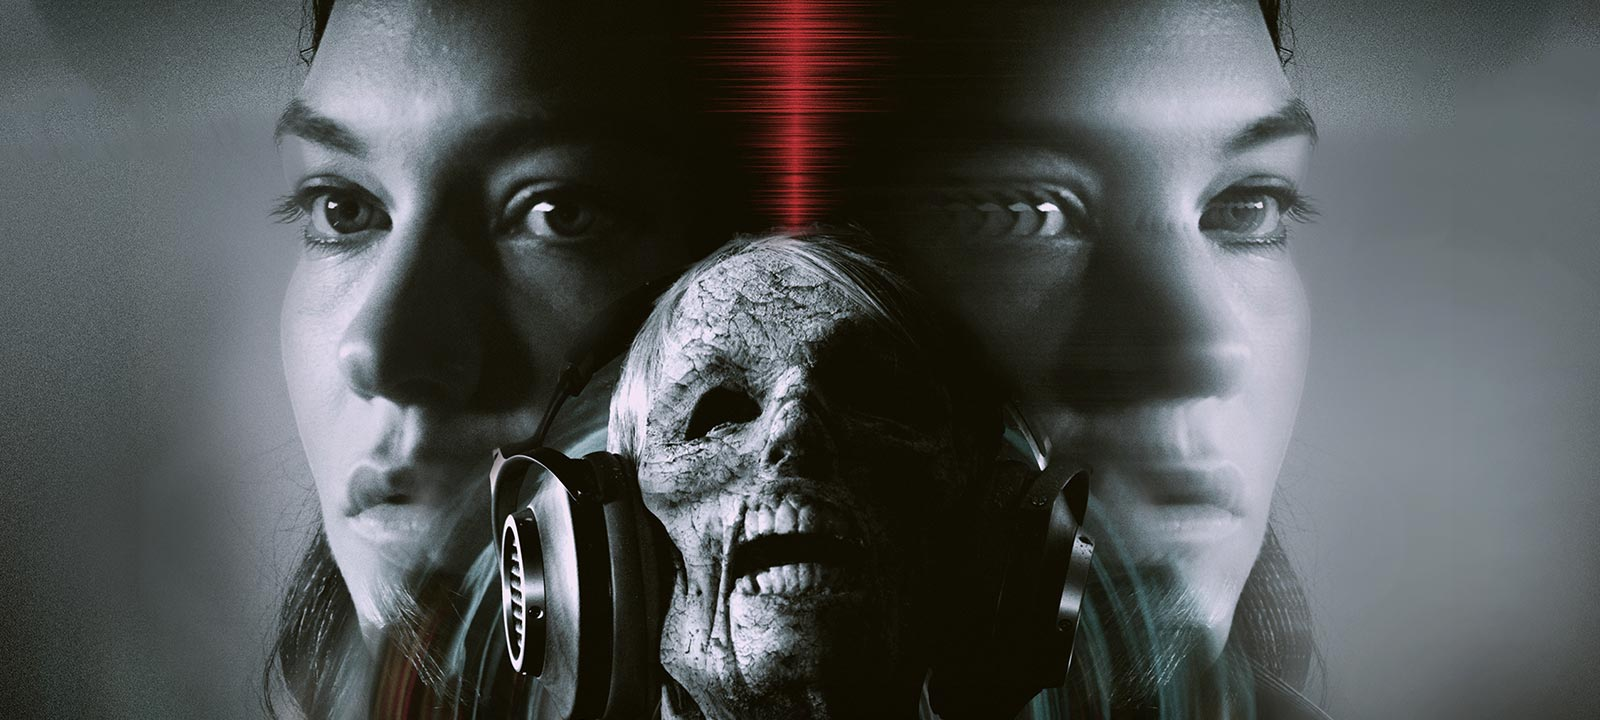 shudder-deadwax-key-art-poster_800x600_MobileWeb_HomeHero